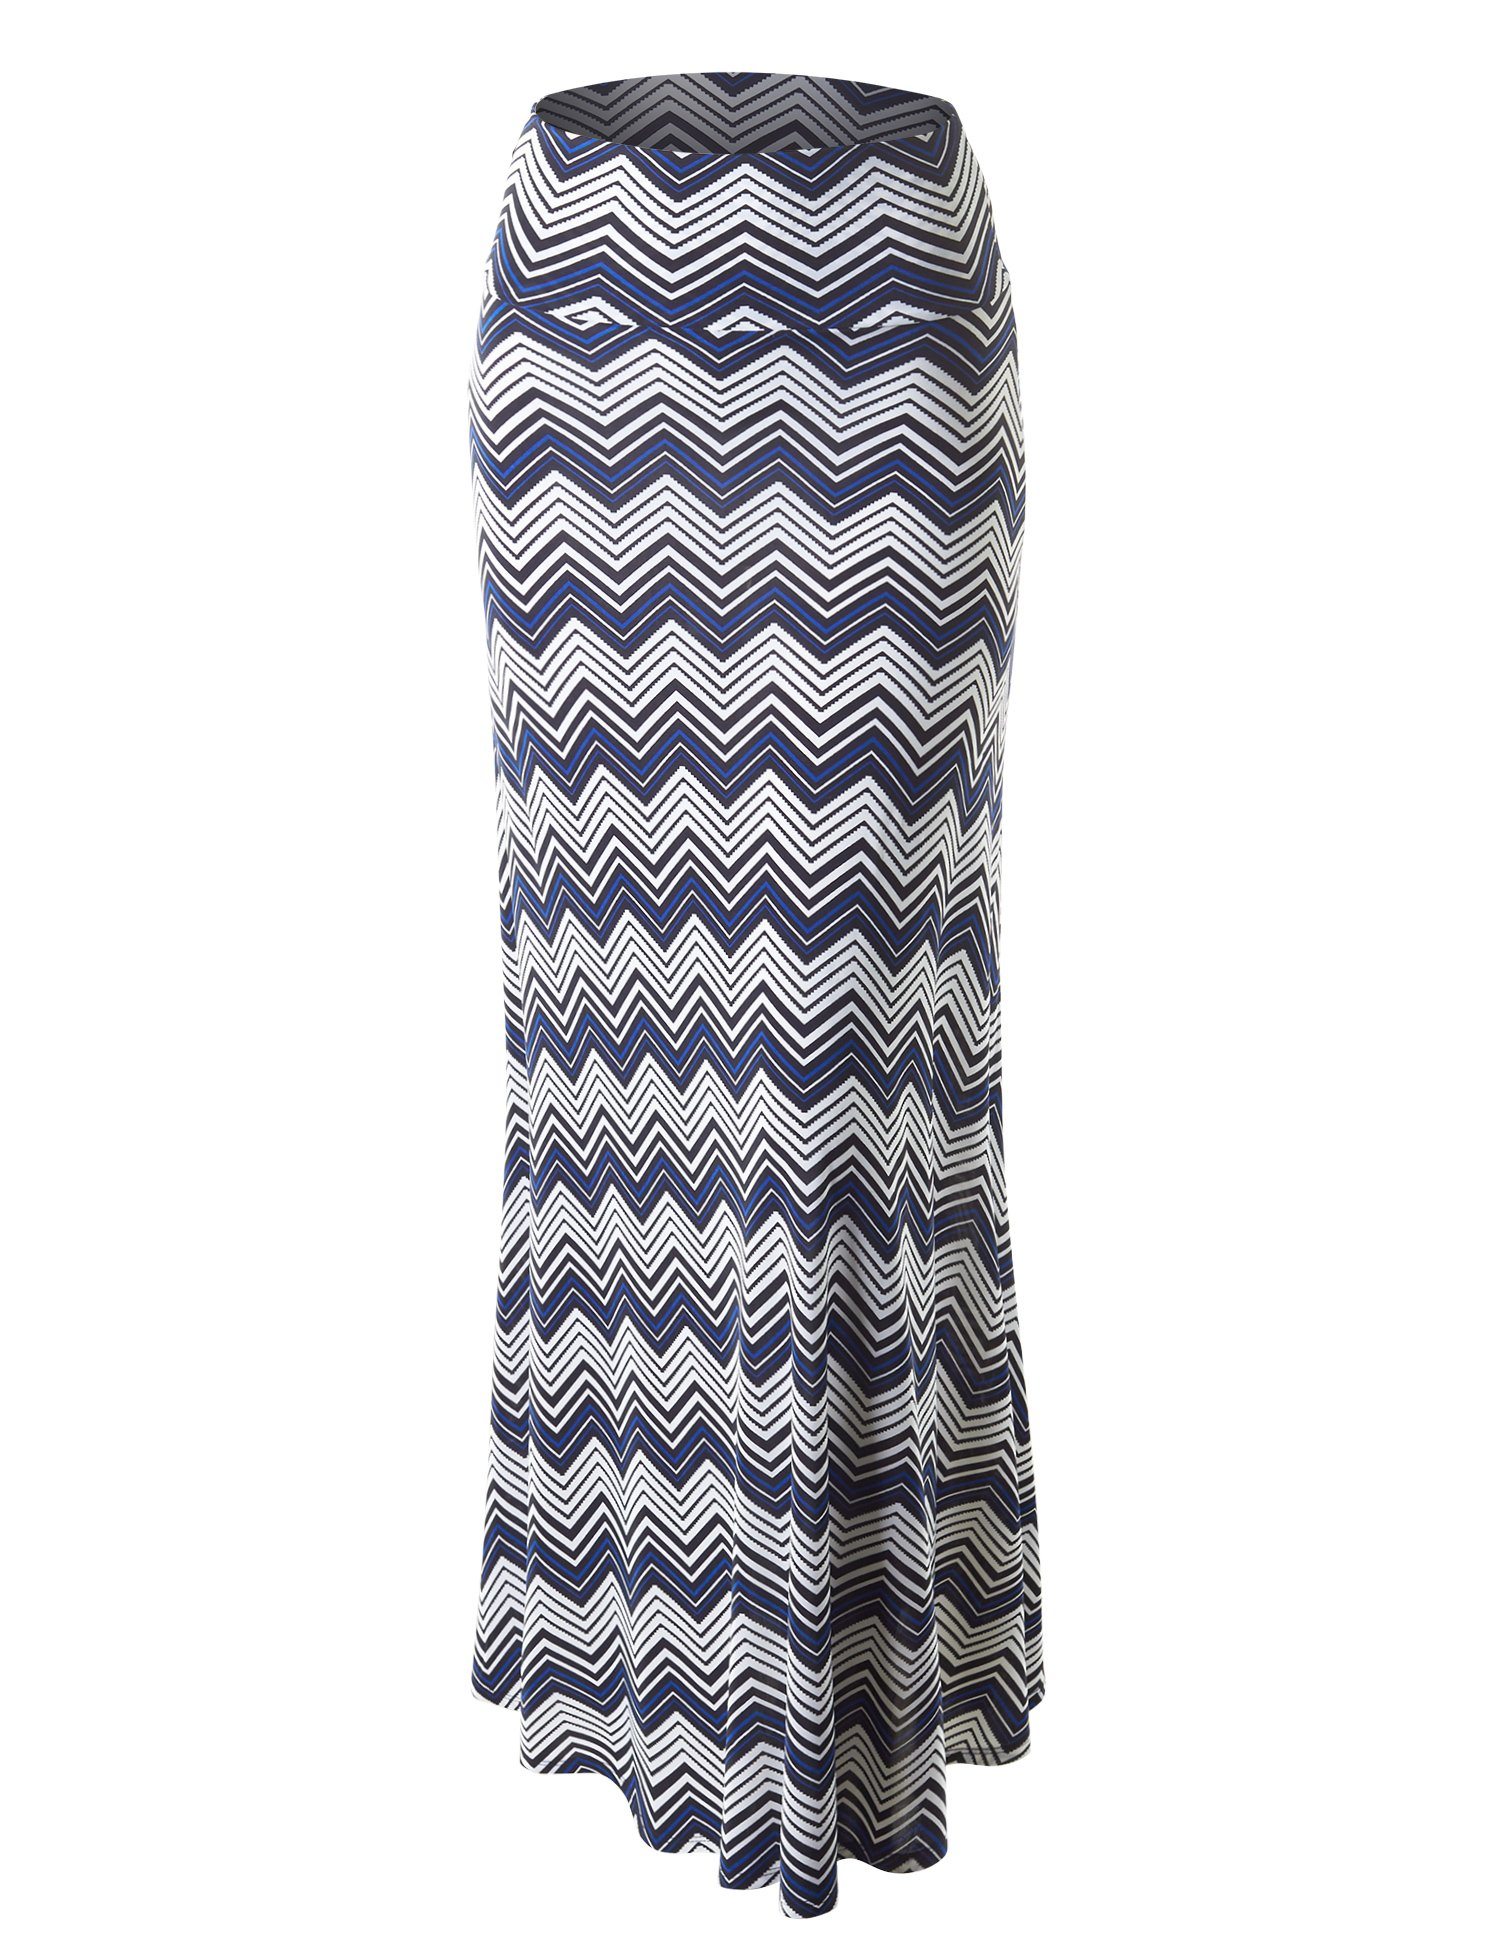 Lock and Love WB1191 Womens Chevron Print Maxi Skirt S Black_Royal